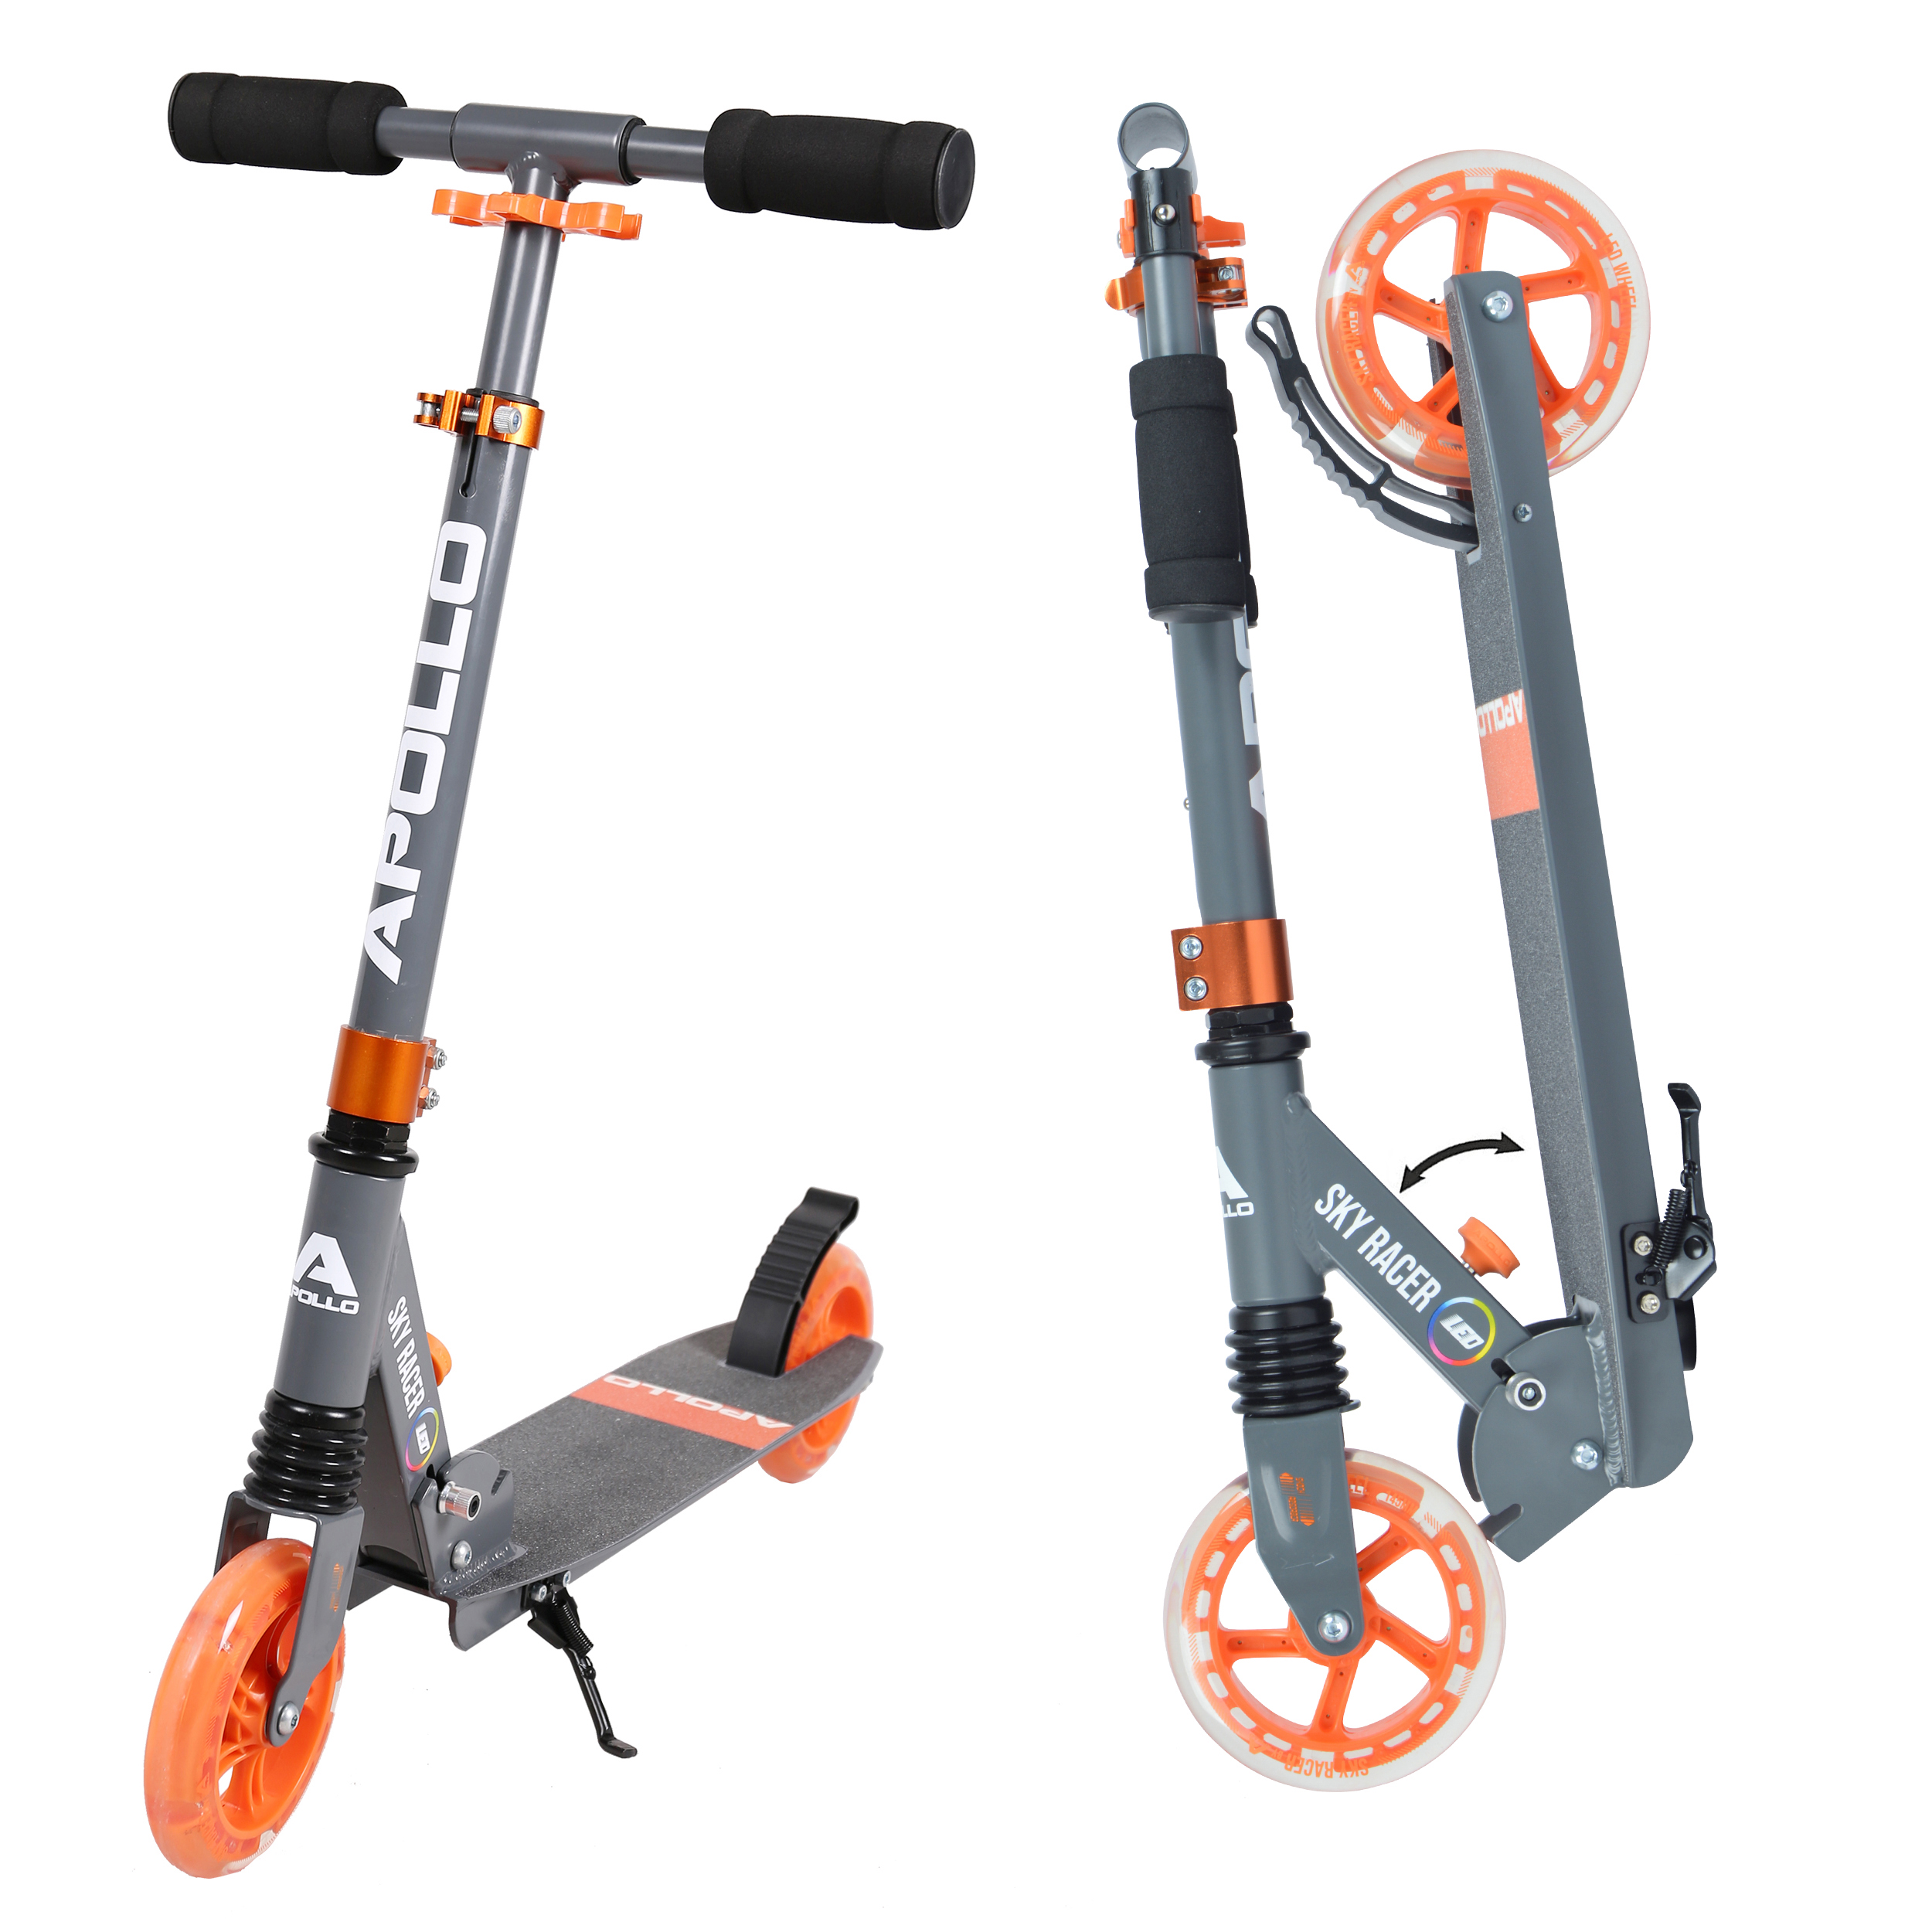 City Scooter - SkyRacer - Orange